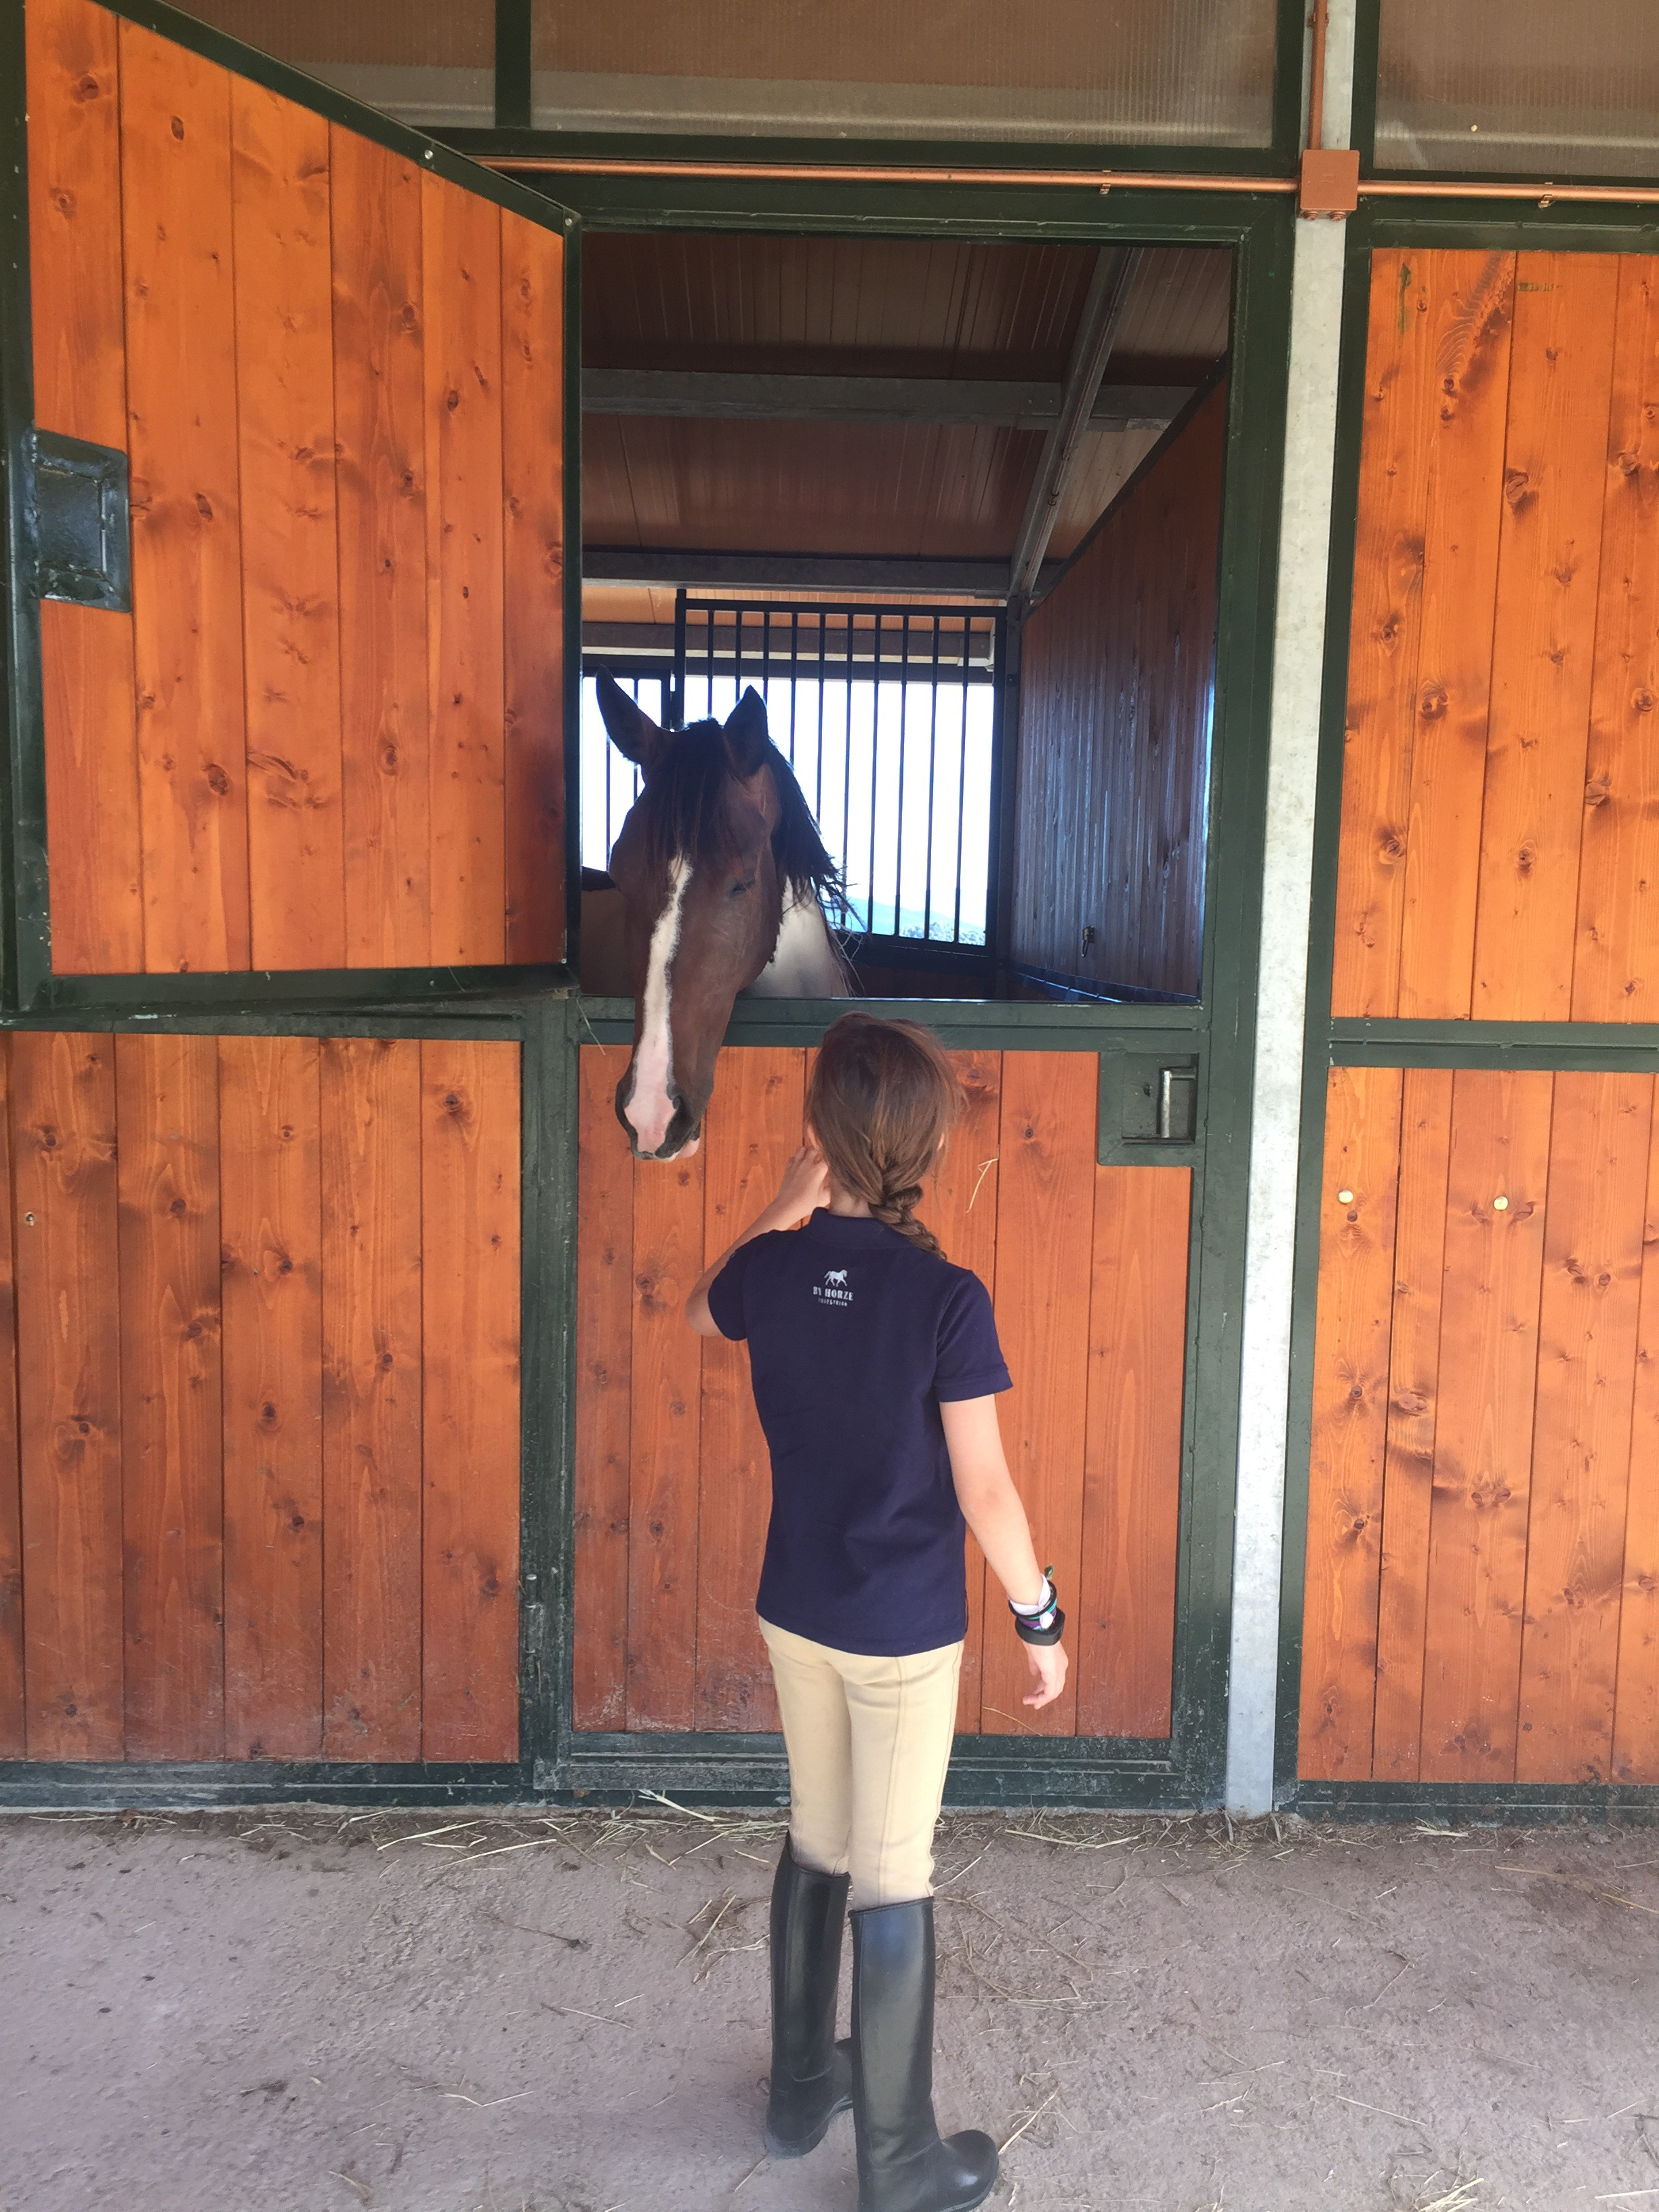 Saying hello to the horses in their stables